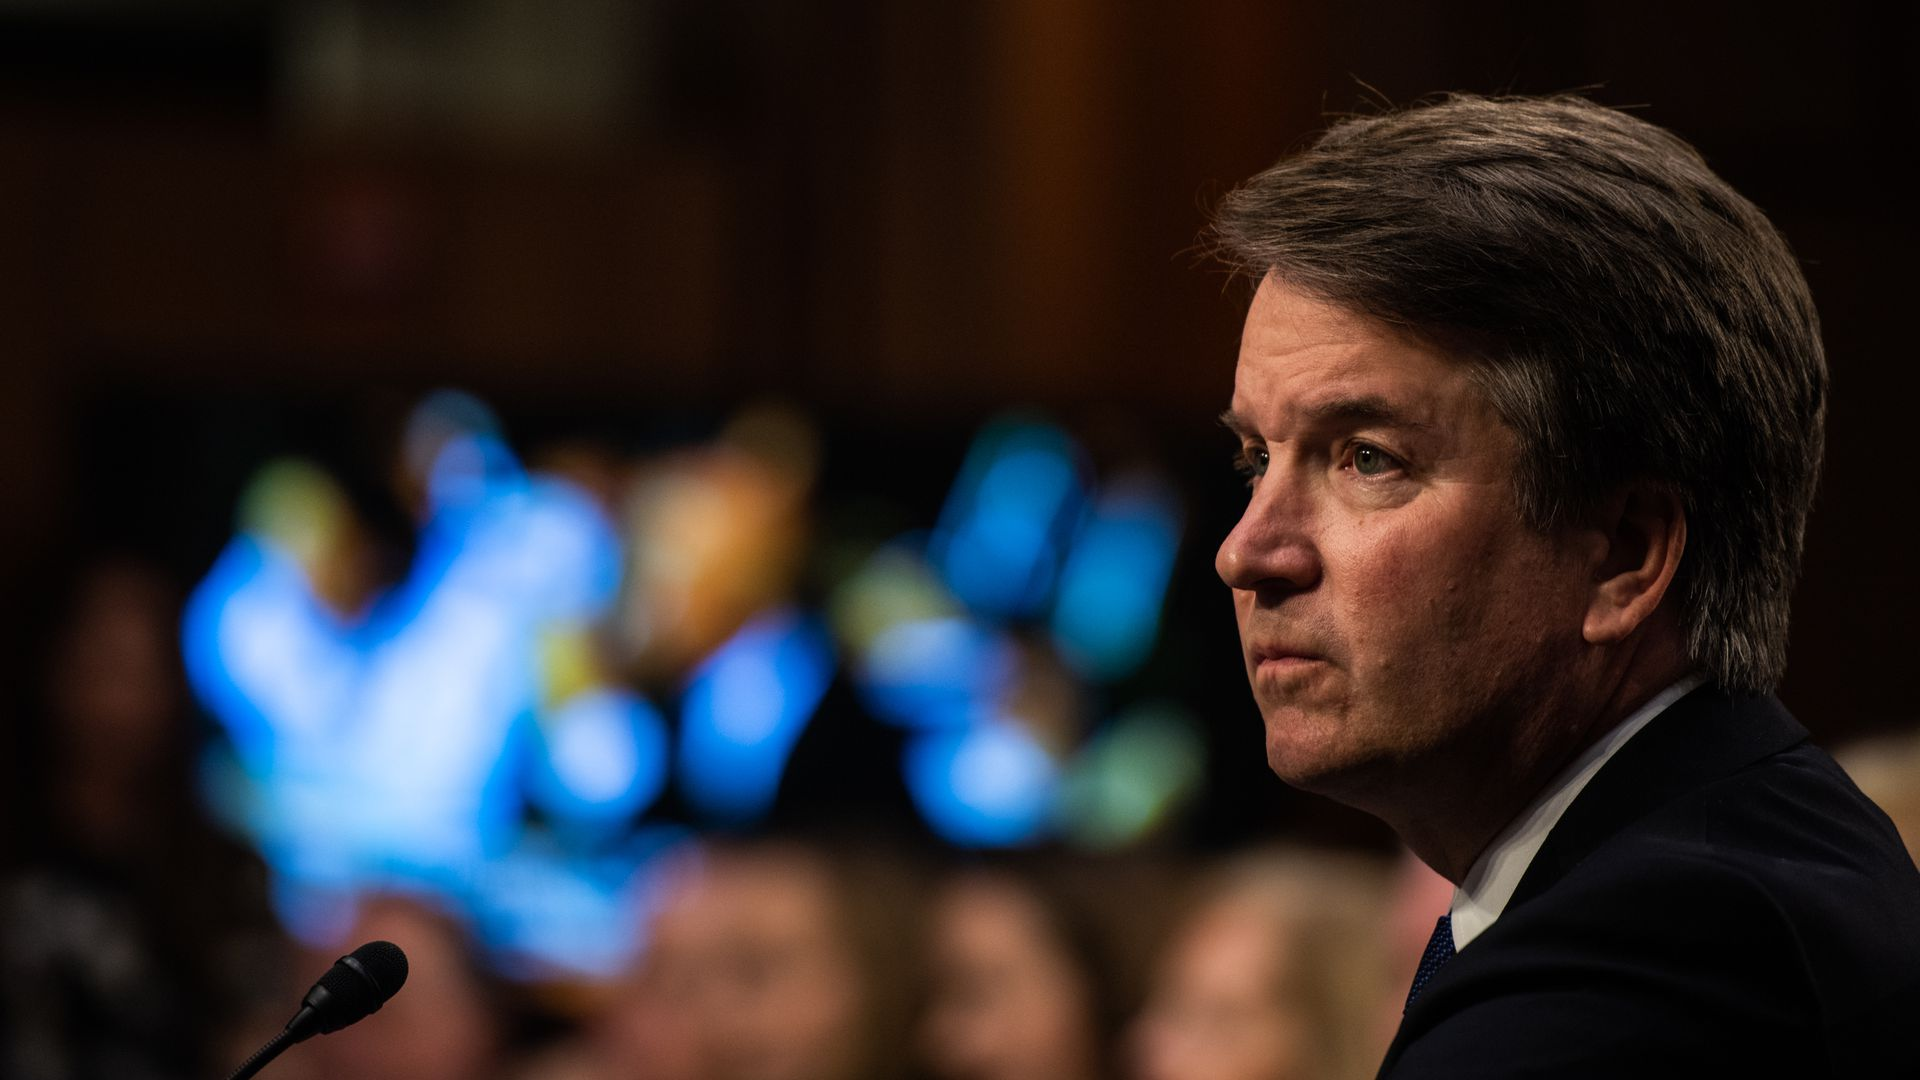 Supreme Court nominee Brett Kavanaugh testifies before the Senate Judiciary Committee